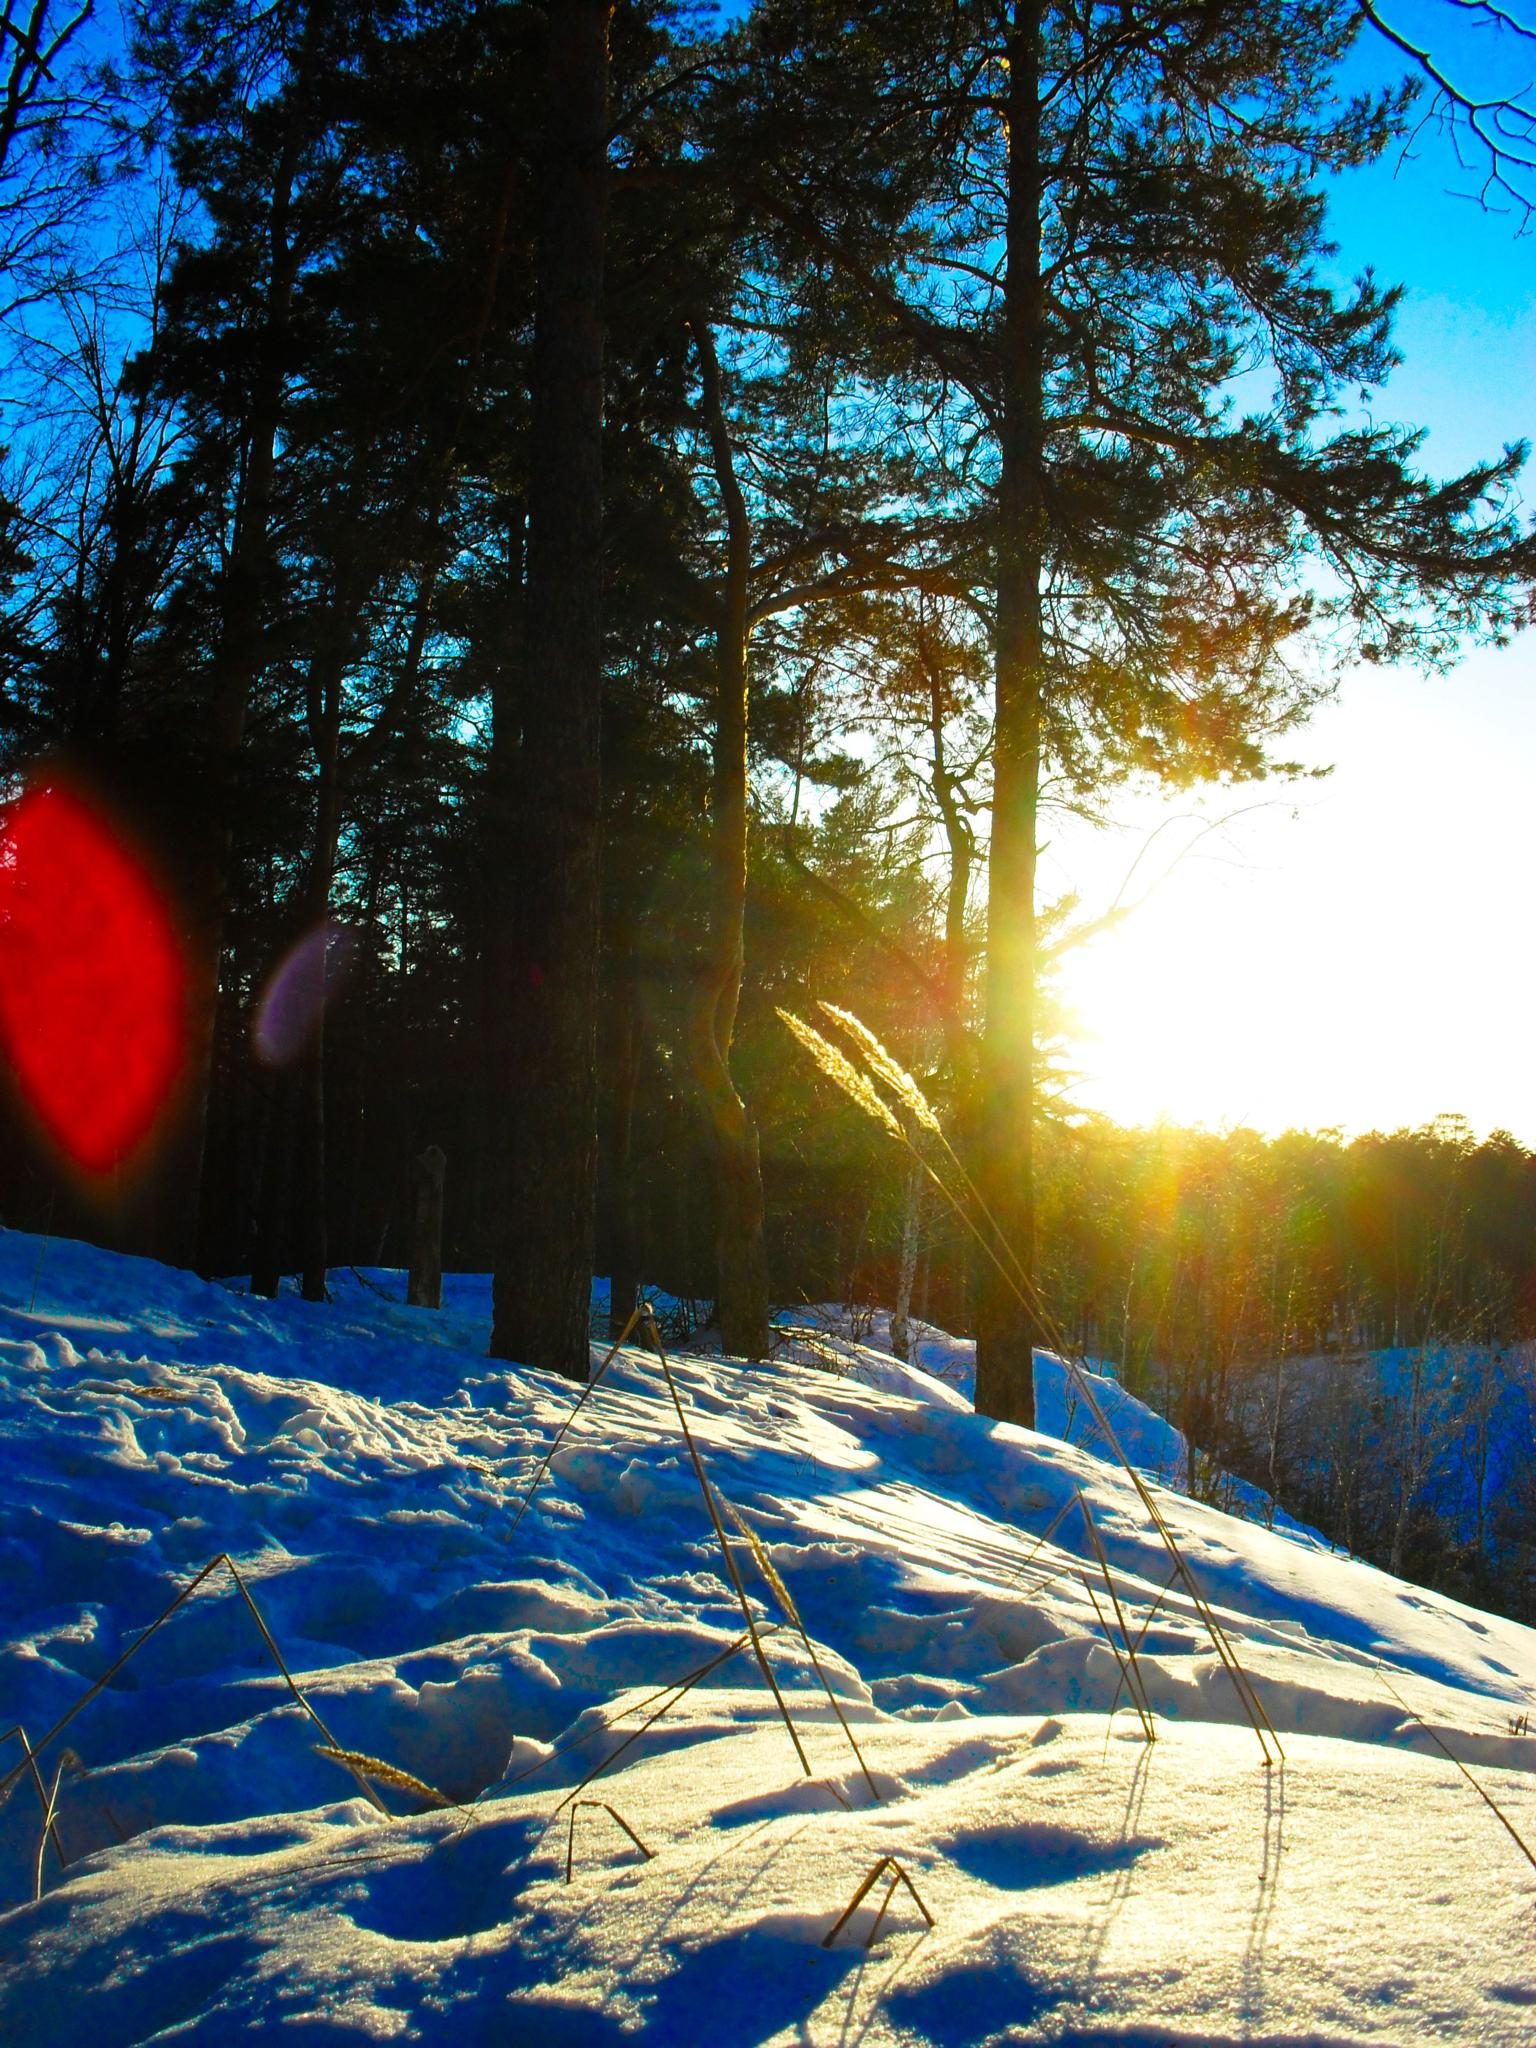 Winter landscape. Sunny day. On a snowy slope. by Andrey Gordeeff